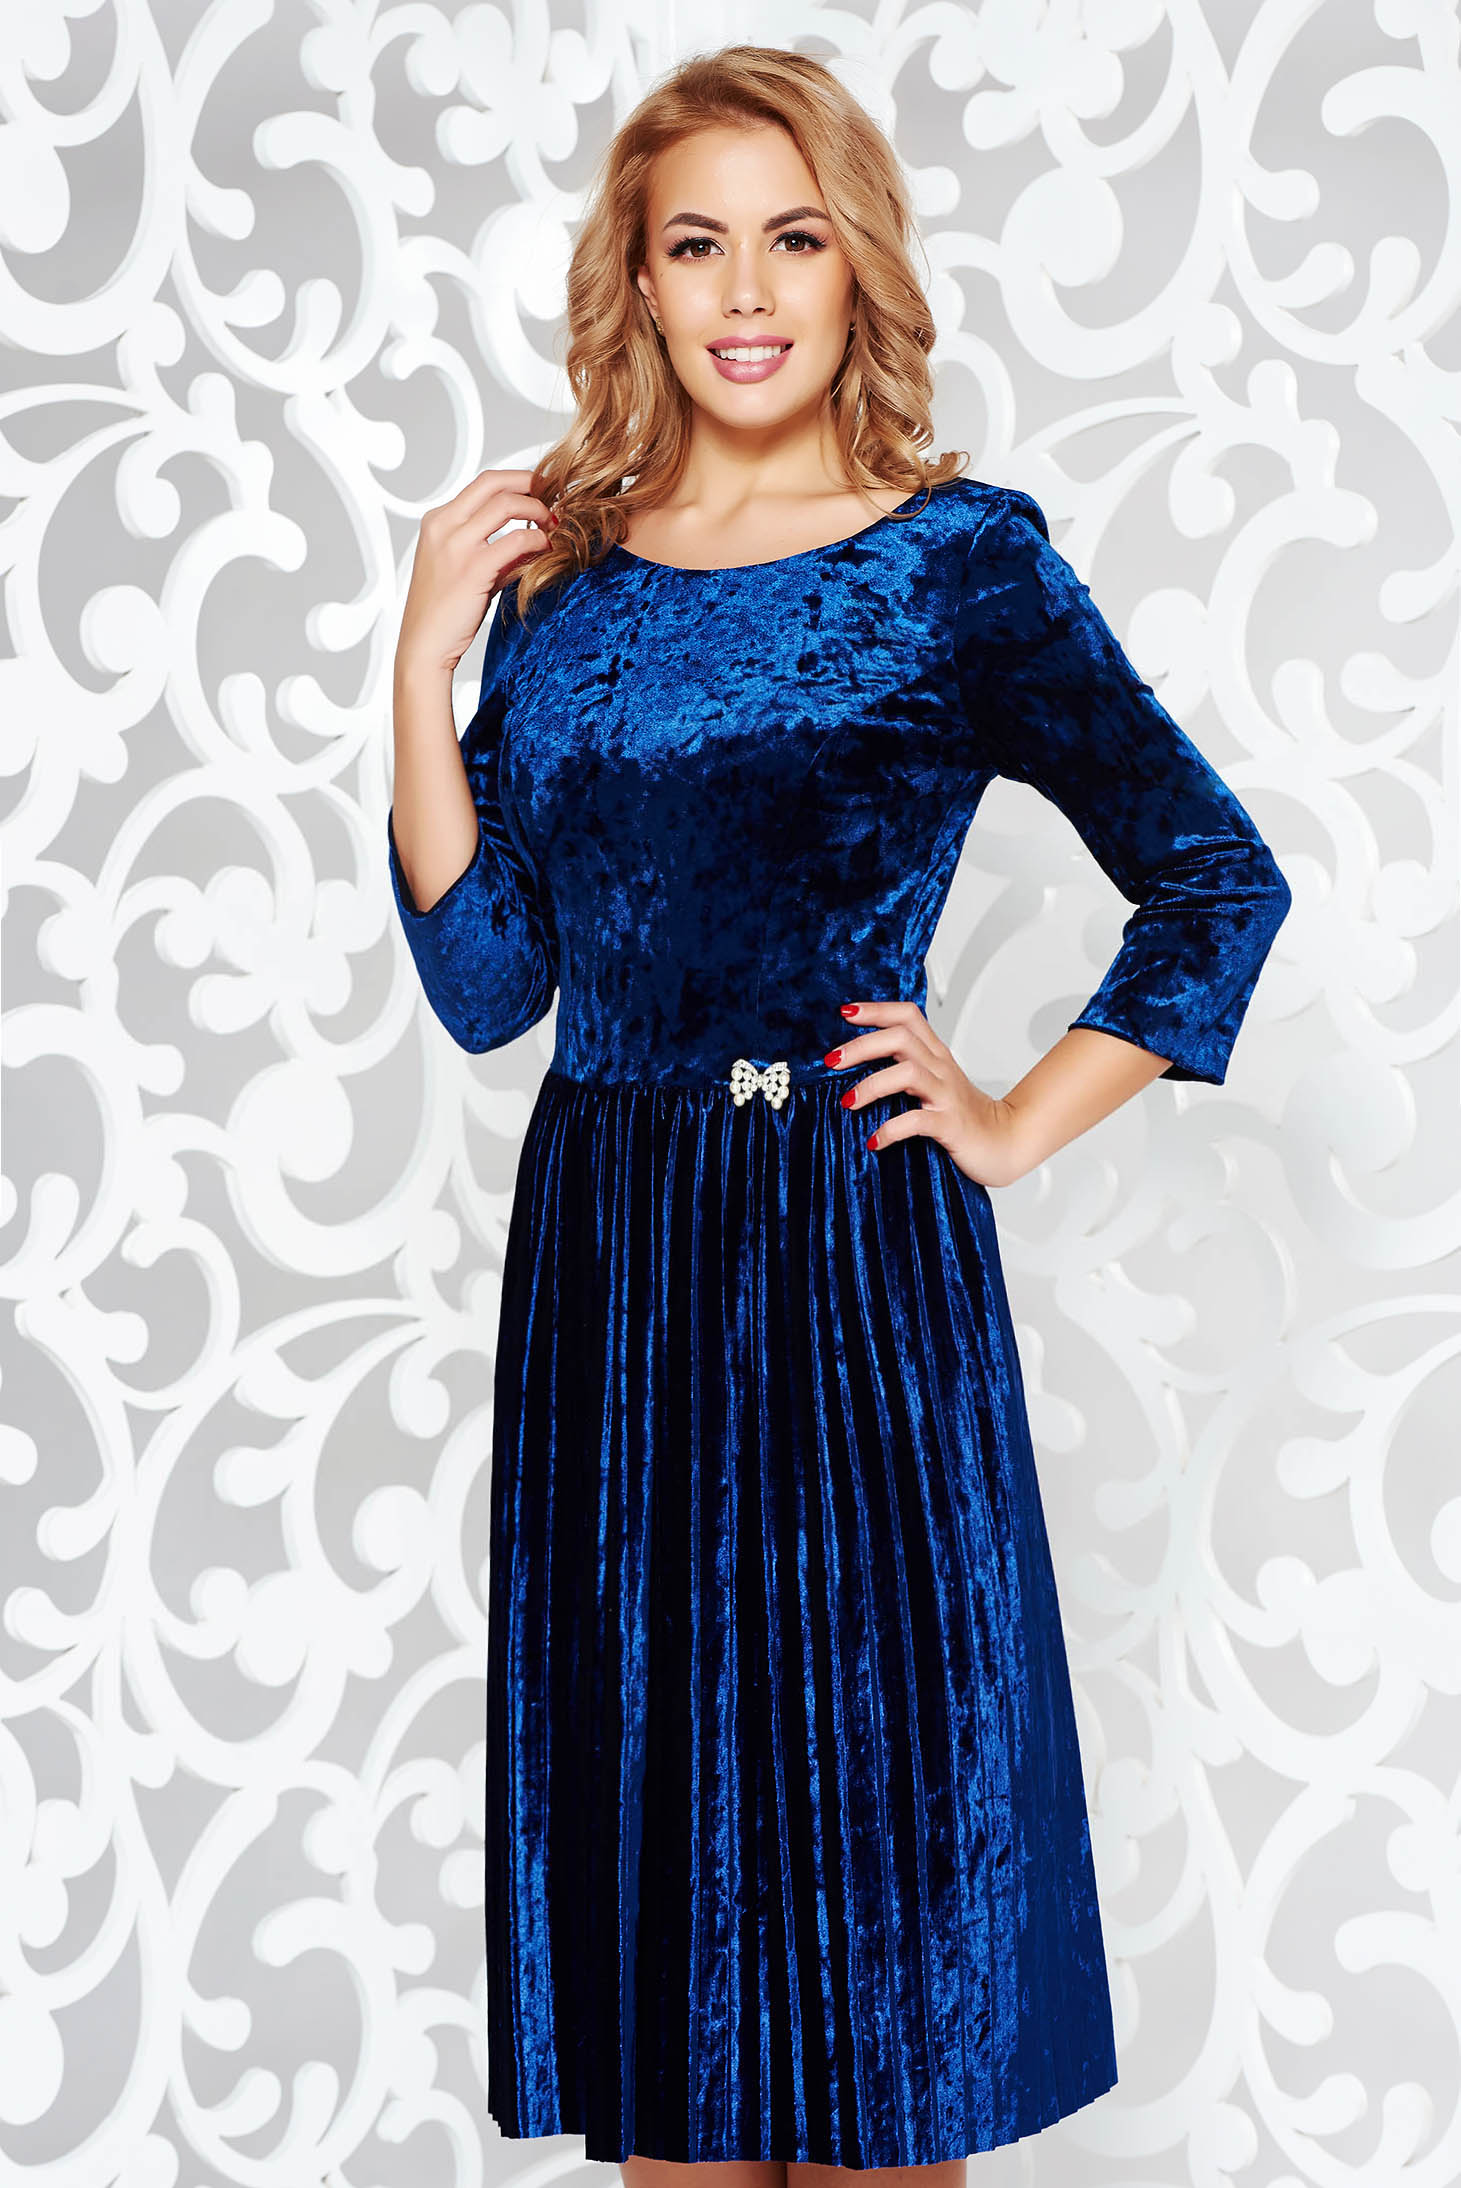 Blue dress occasional cloche velvet accessorized with breastpin with embellished accessories folded up